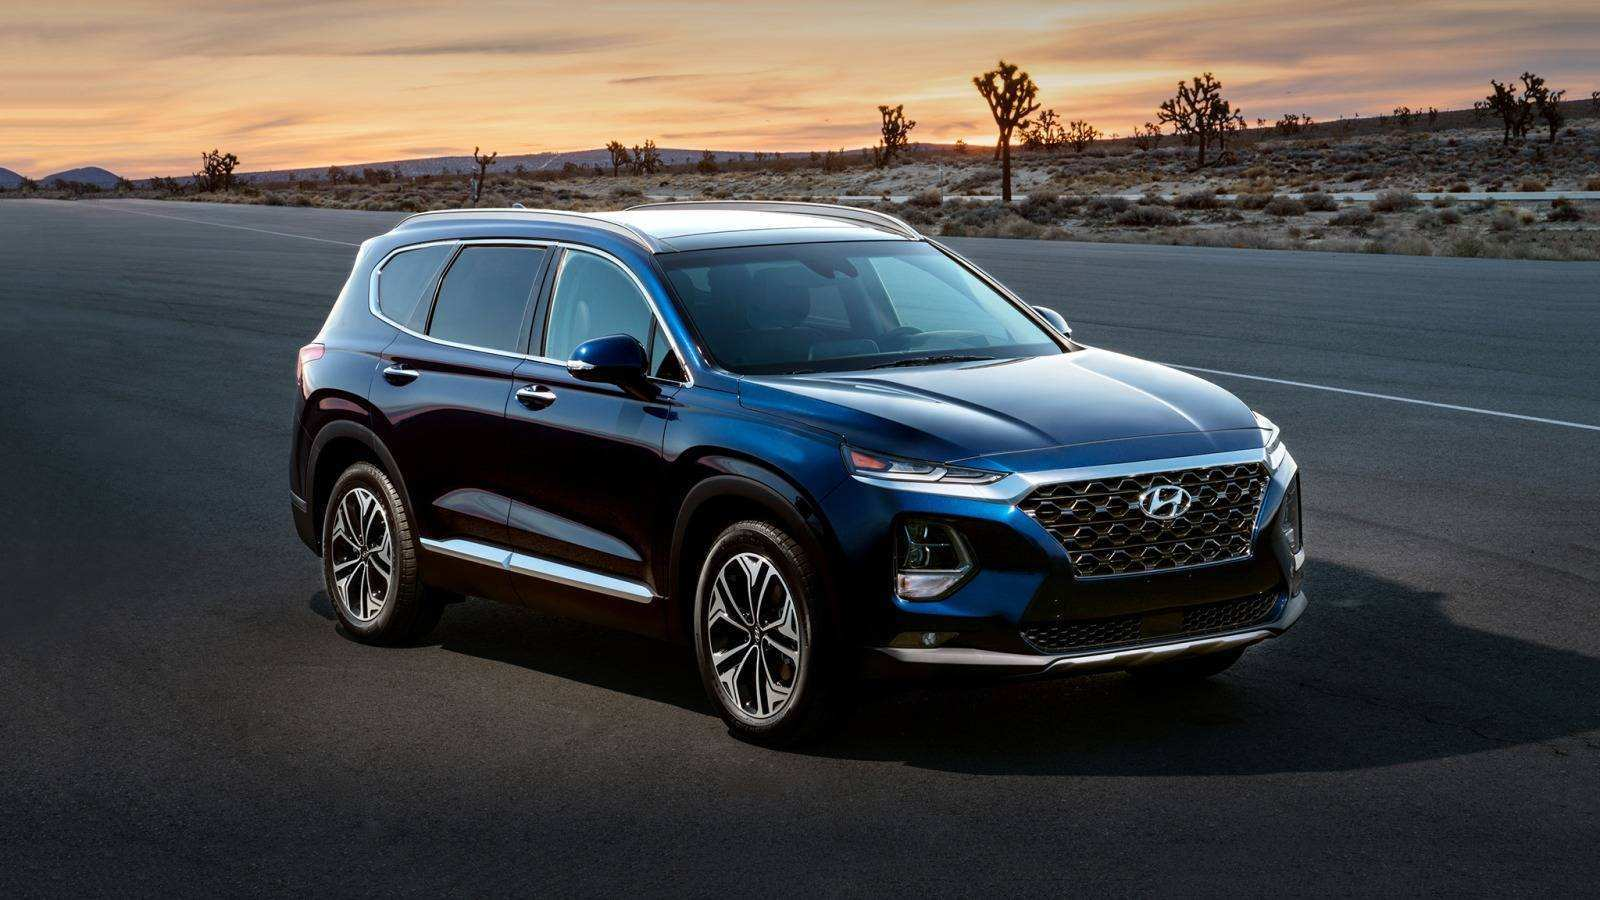 60 The Hyundai Jeep 2020 Exterior and Interior with Hyundai Jeep 2020